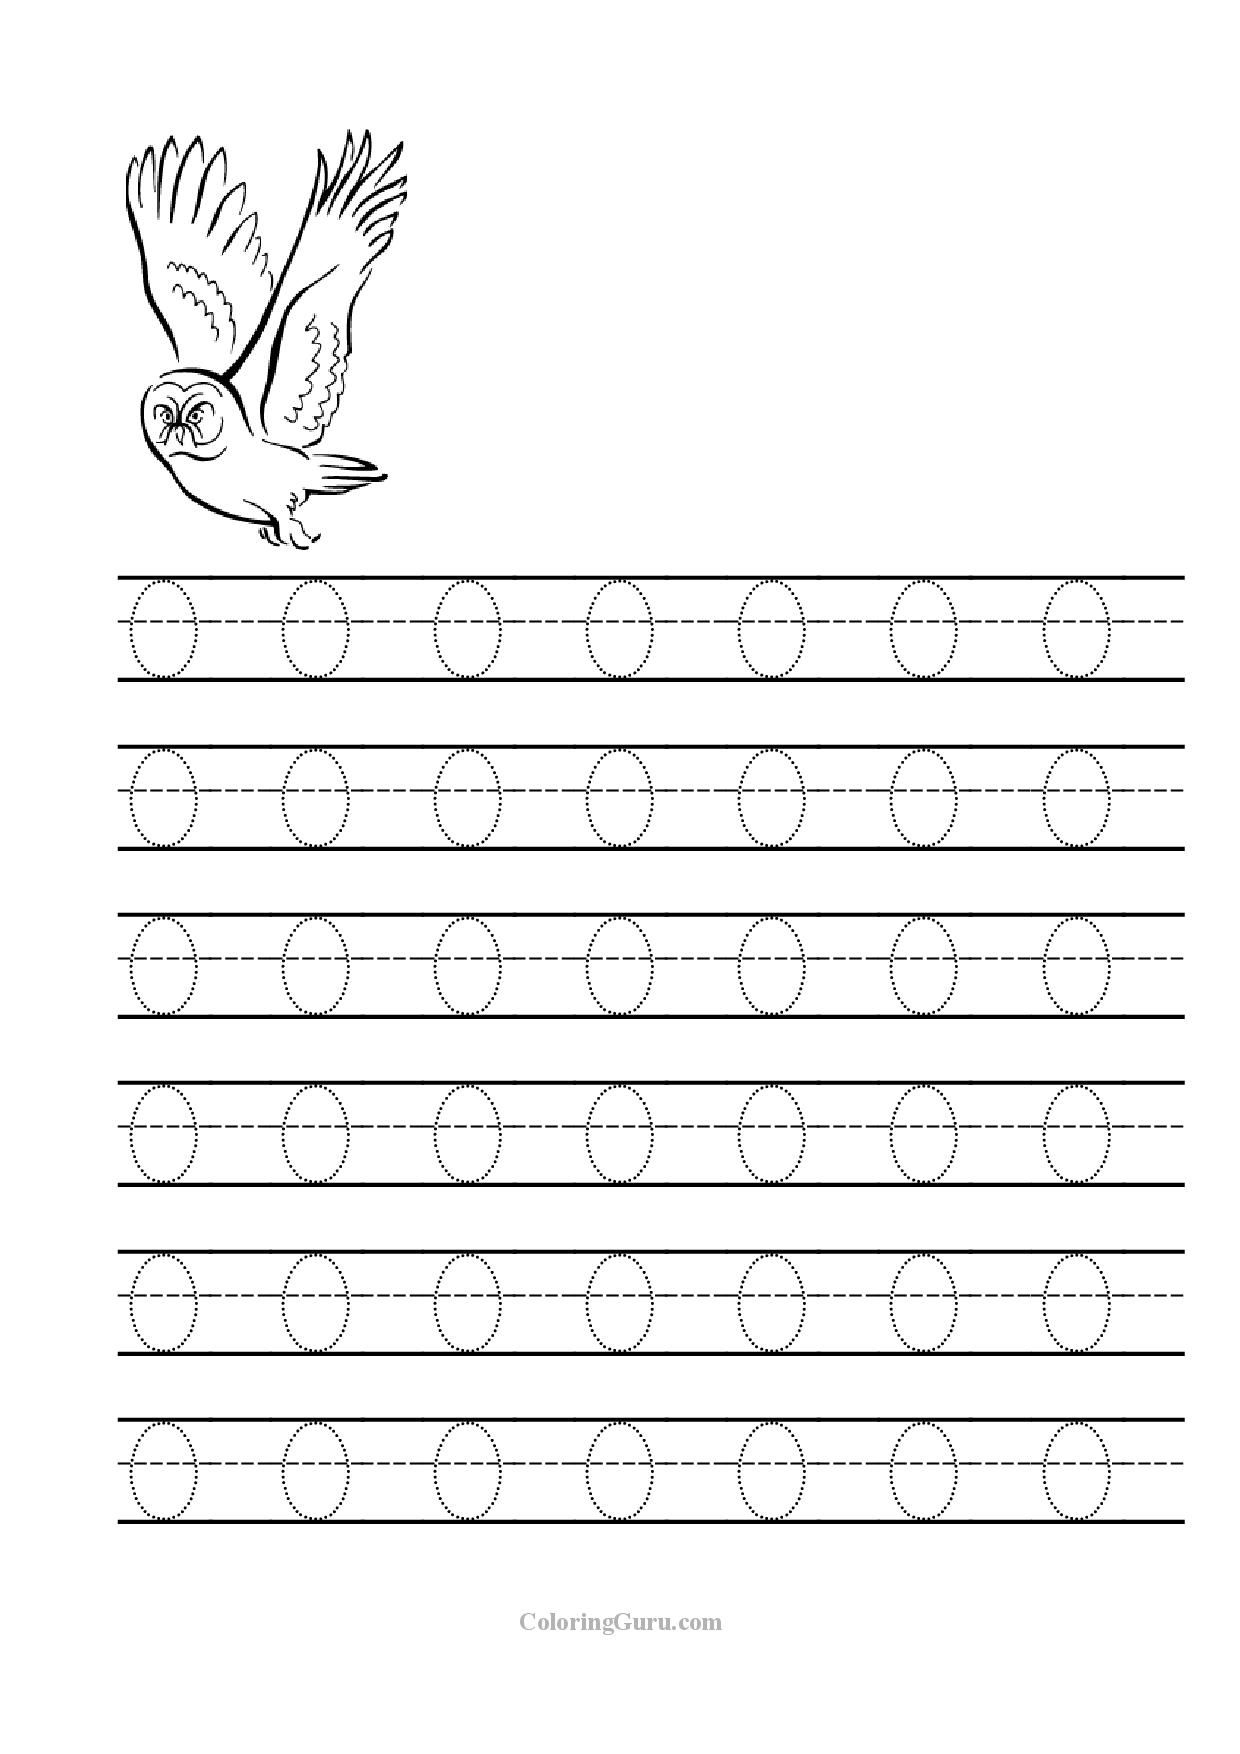 worksheet Letter O Worksheet free printable tracing letter o worksheets for preschool preschool